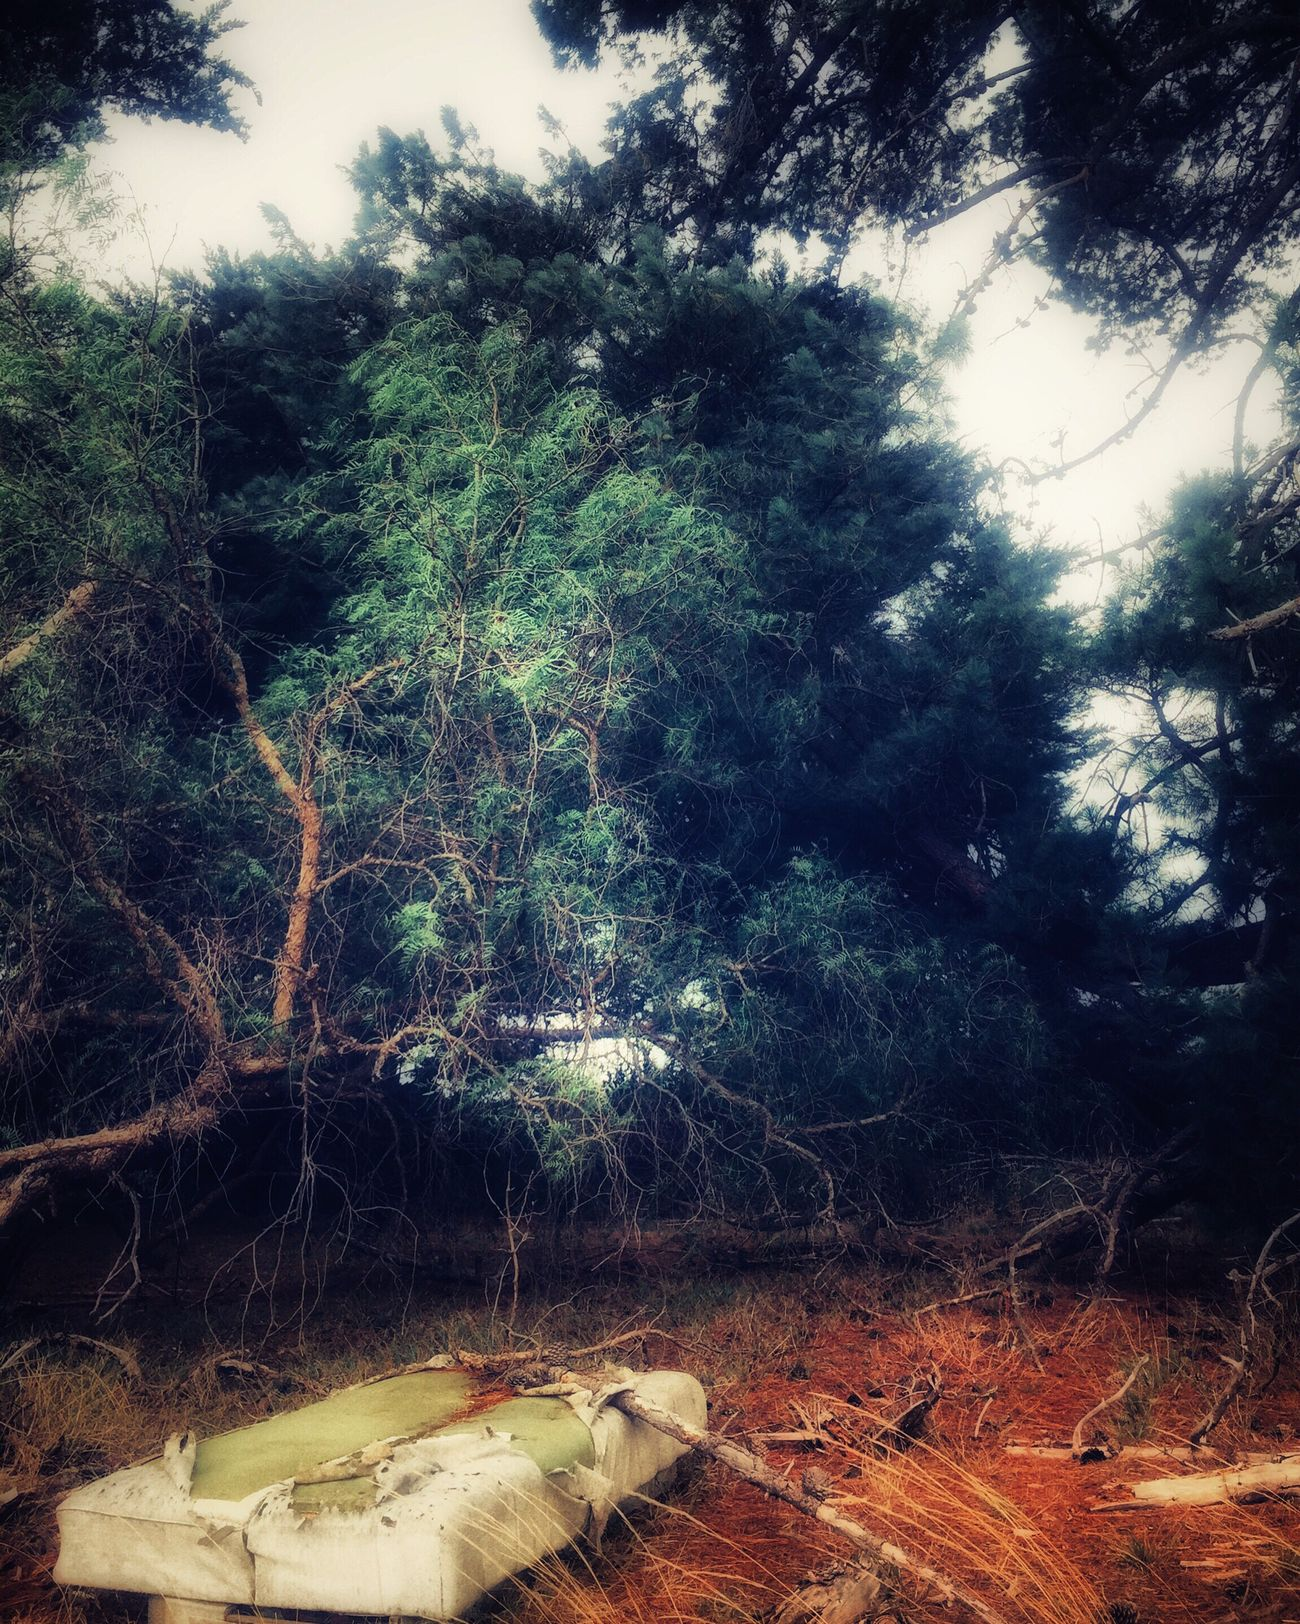 Room for two? Tree Nature Forest No People EyeEm Best Edits Outdoors Decay Rubbish Leftbehind Pine Trees Australia